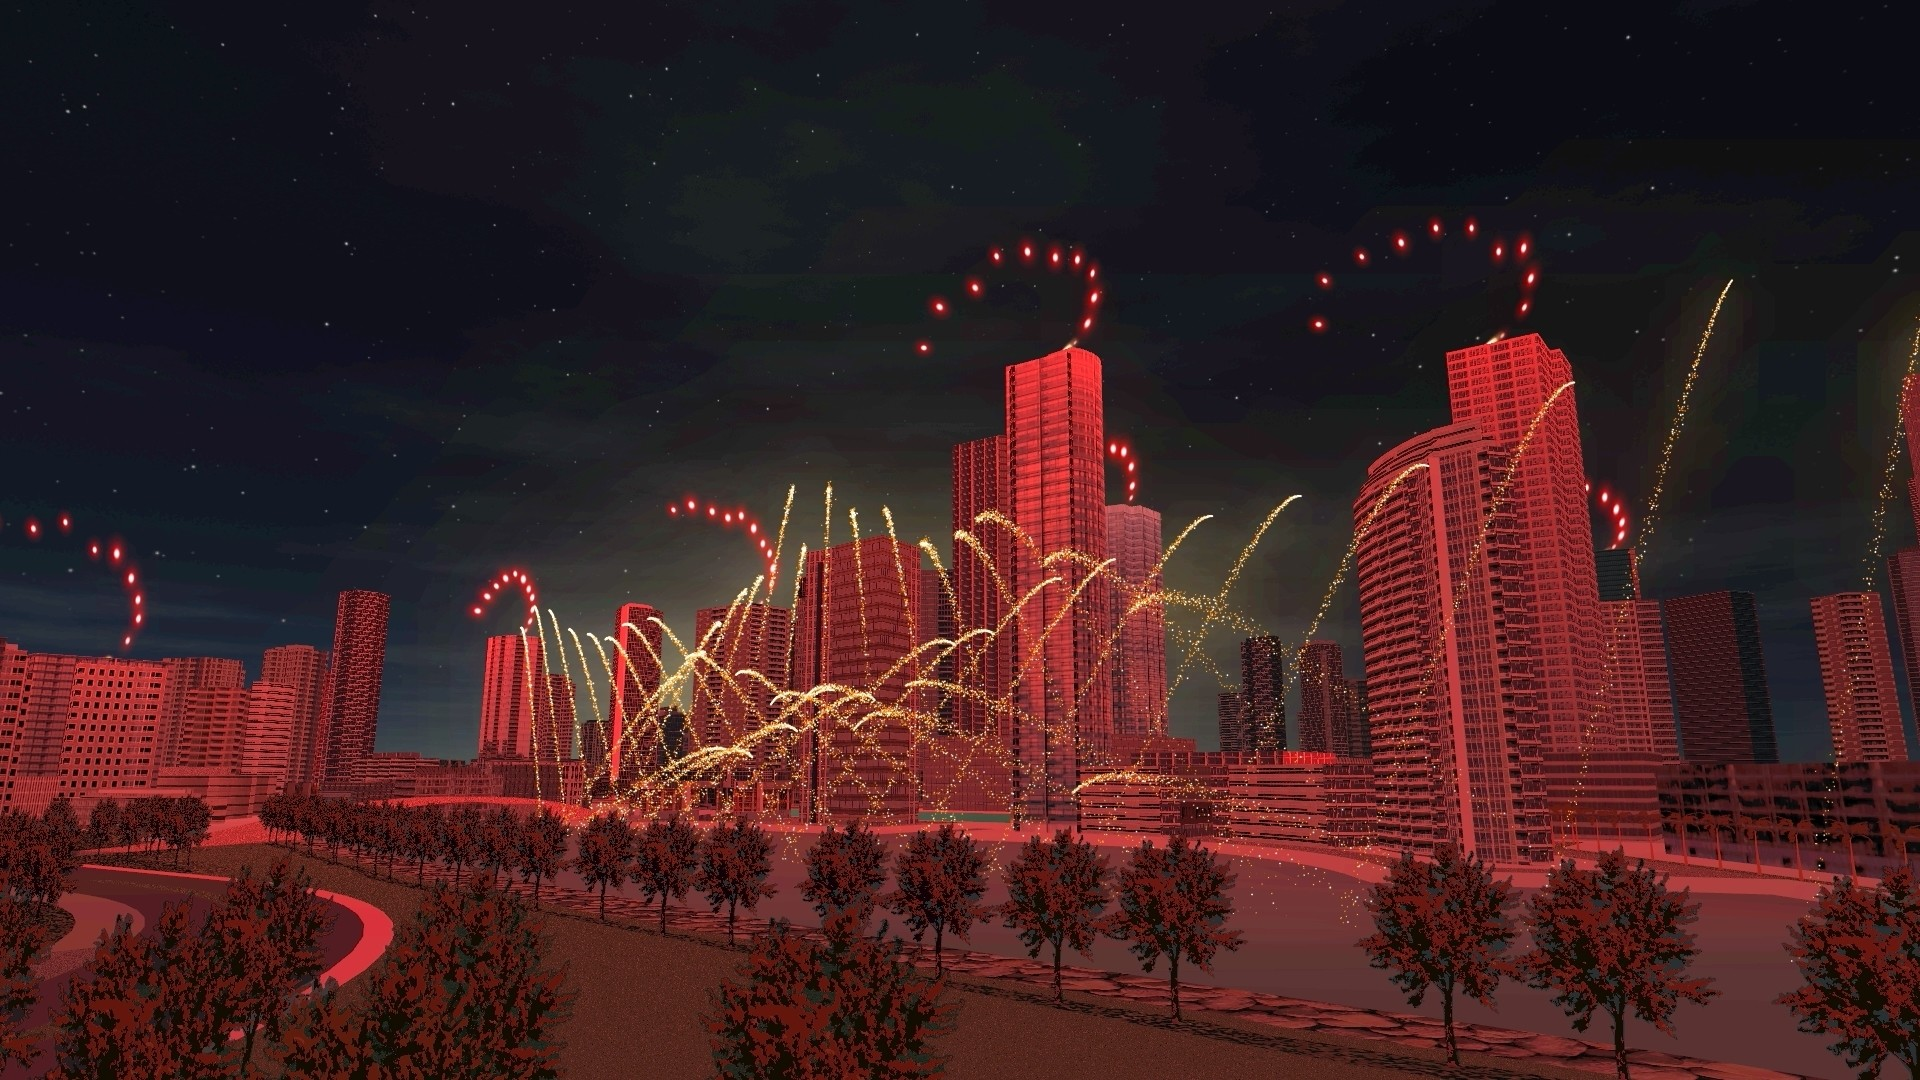 The Pyro Enthusiast Who Built Their Own Professional Fireworks Simulator